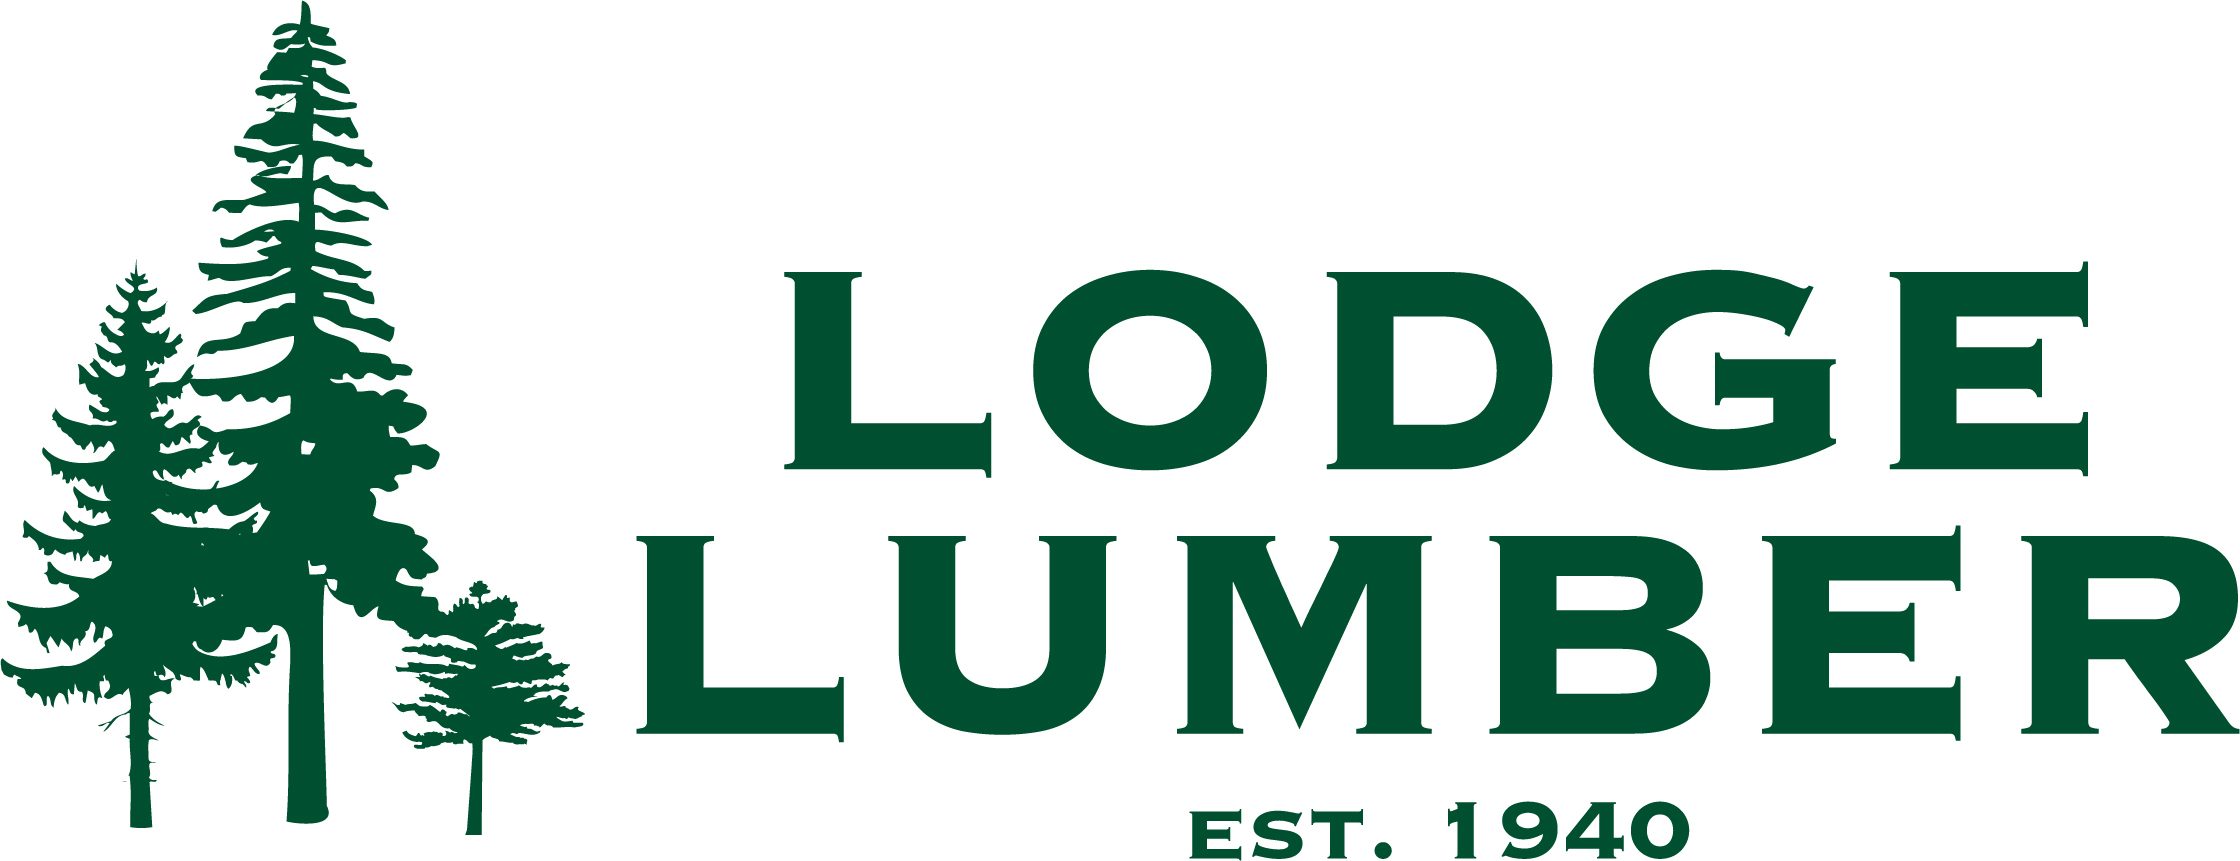 Lodge Lumber Logo